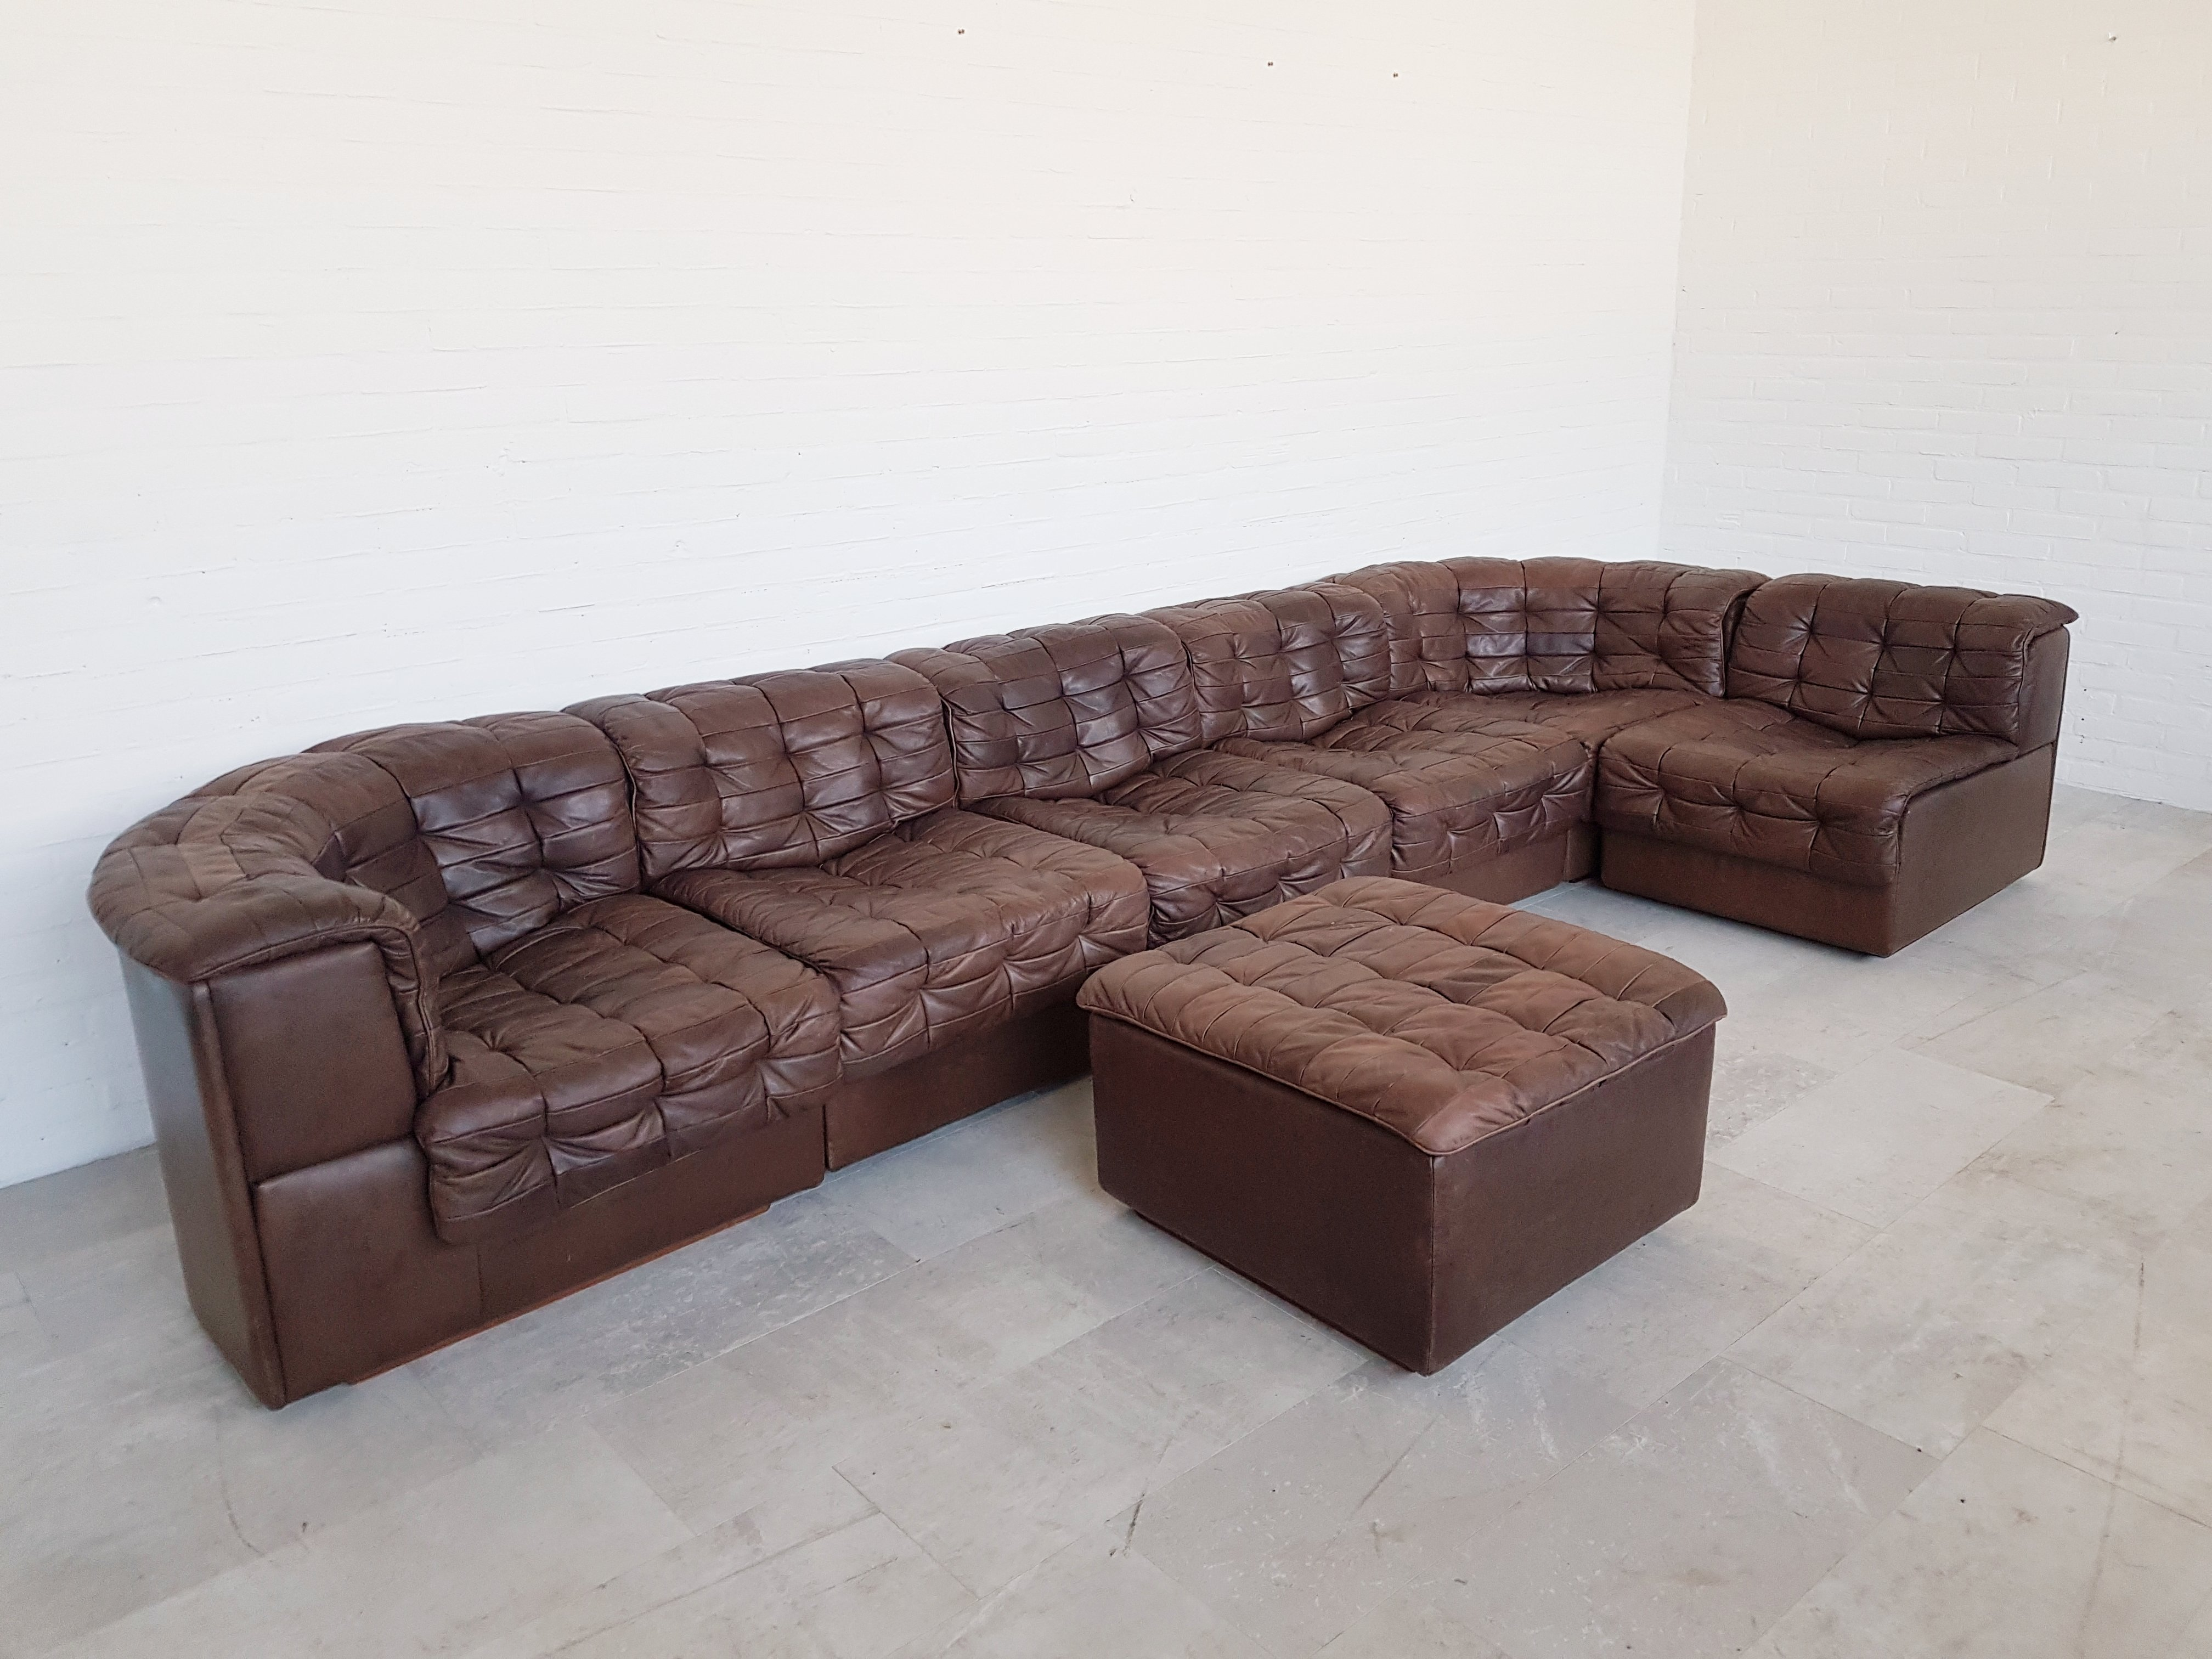 Phenomenal De Sede Ds11 6 Piece Brown Leather Sectional With Ottoman Squirreltailoven Fun Painted Chair Ideas Images Squirreltailovenorg